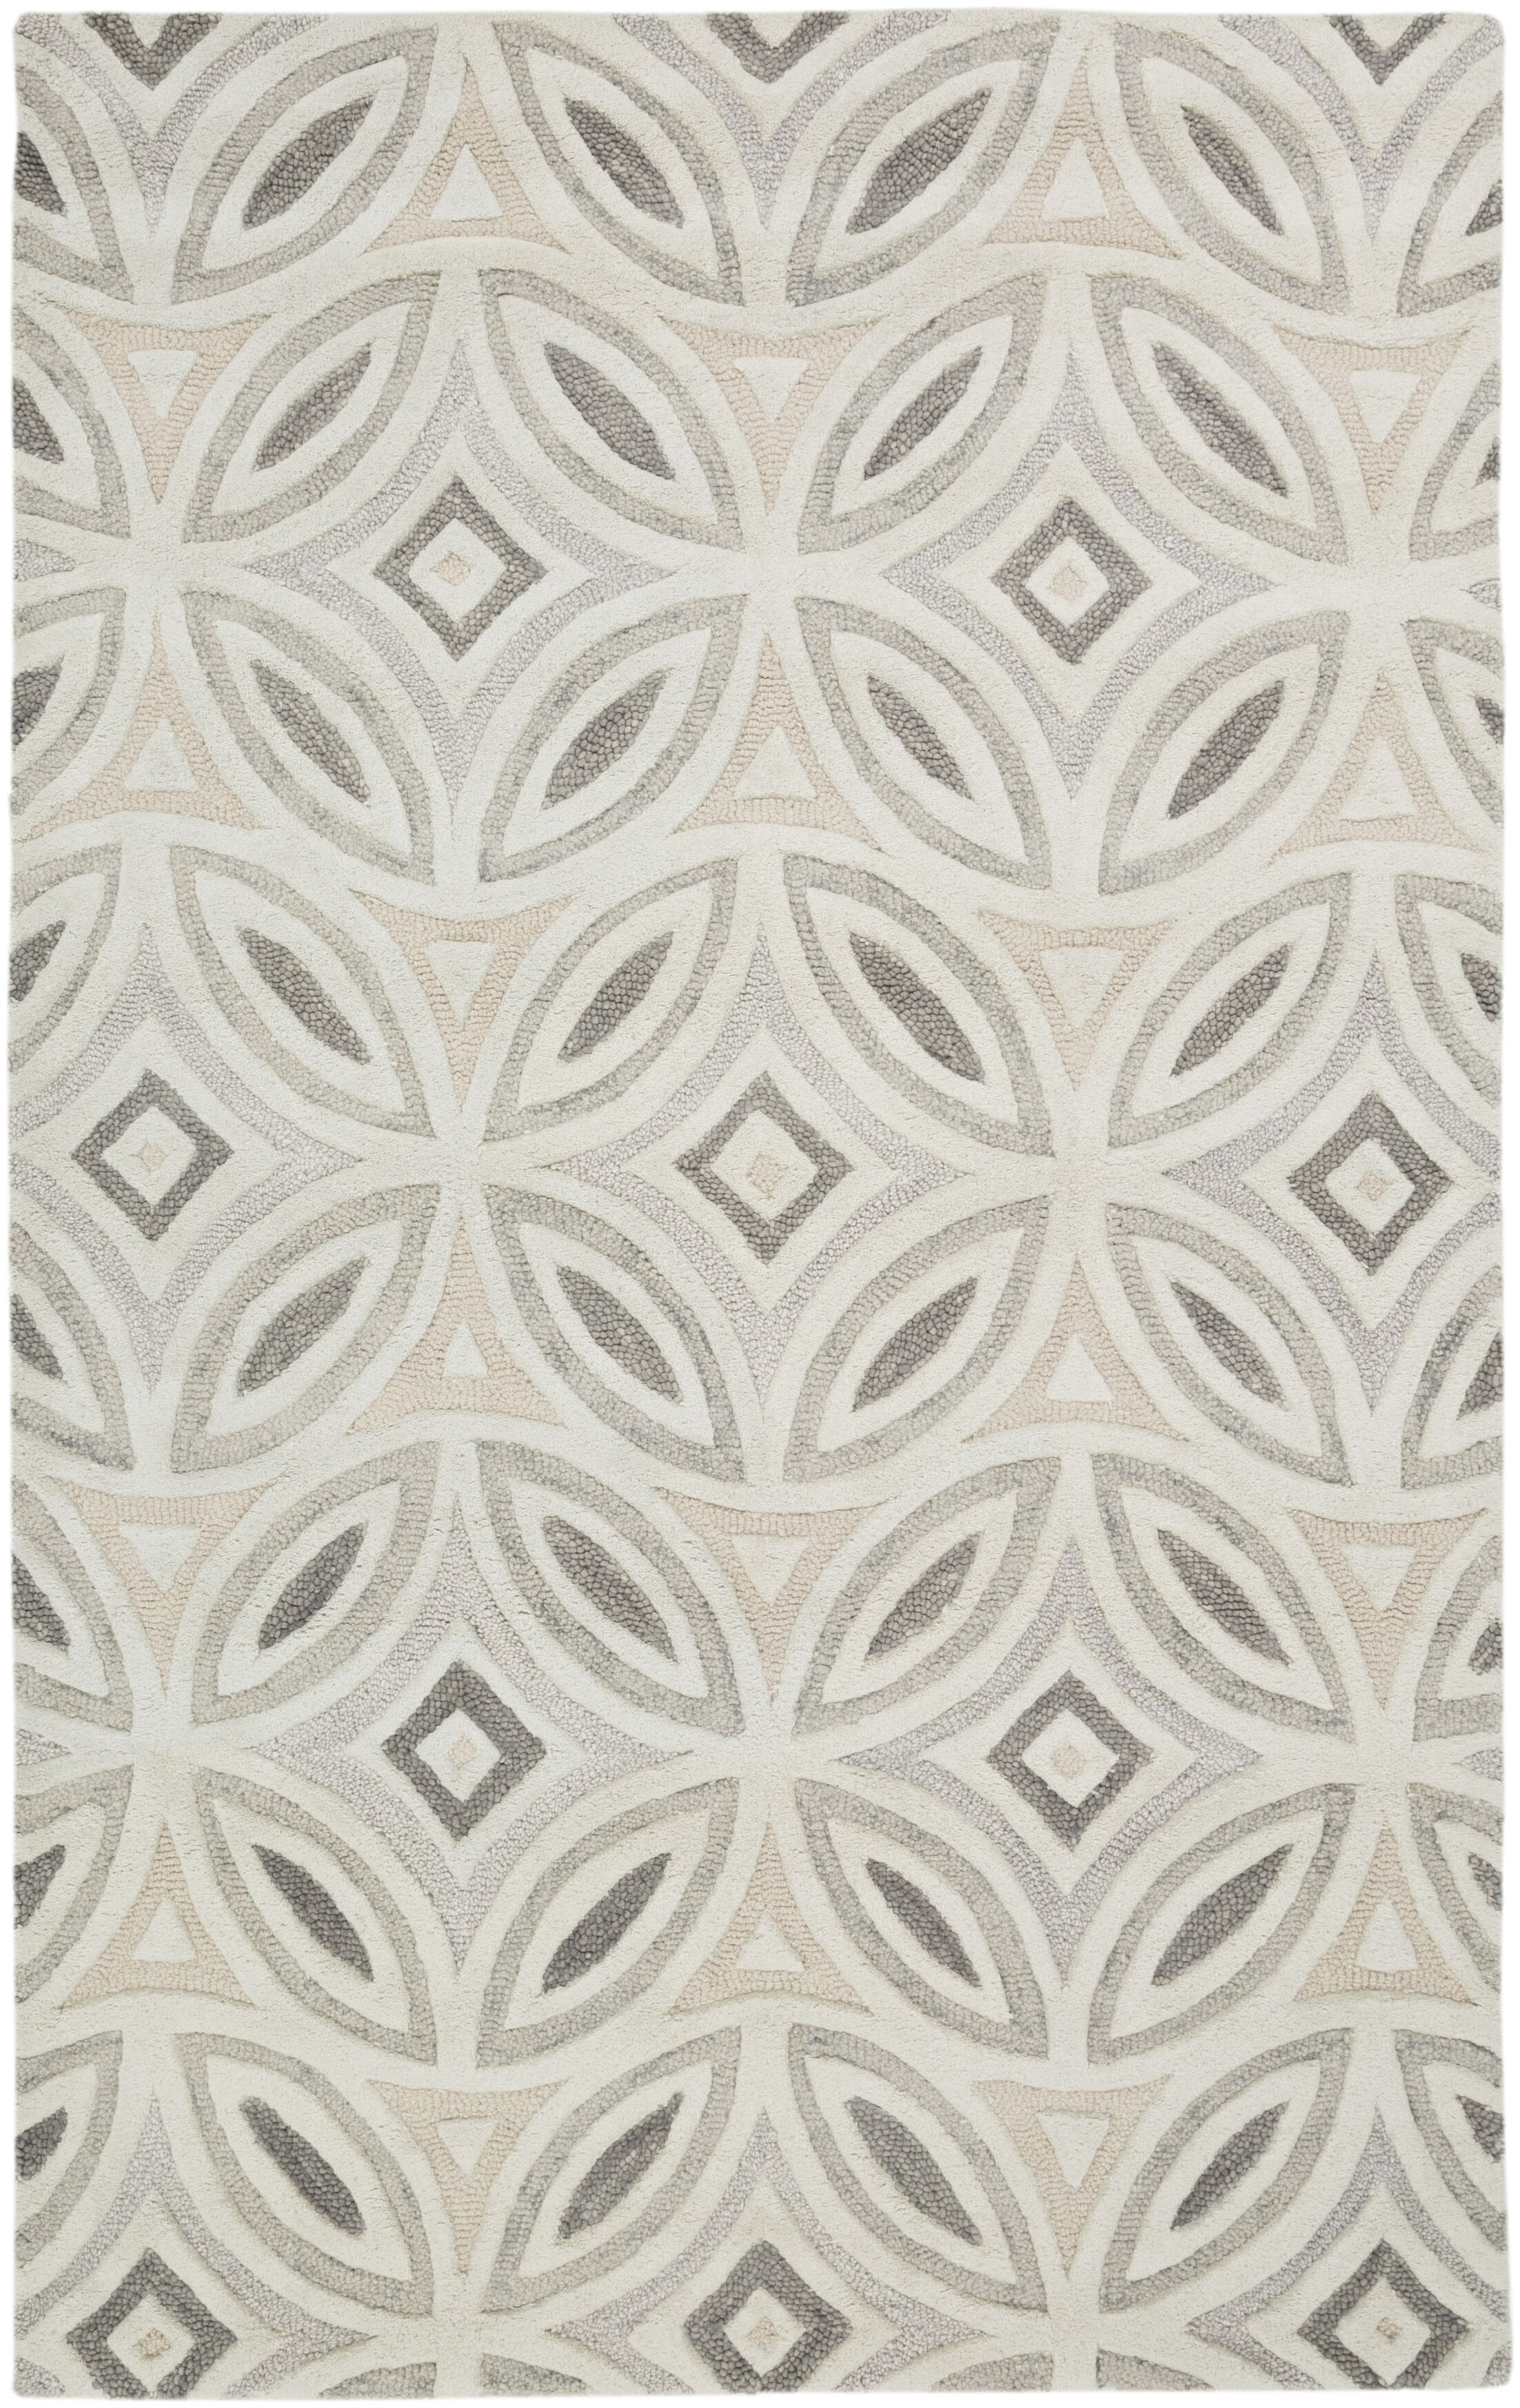 Quinn Geometric Beige/Light Gray Area Rug Rug Size: Rectangle 8' x 11'